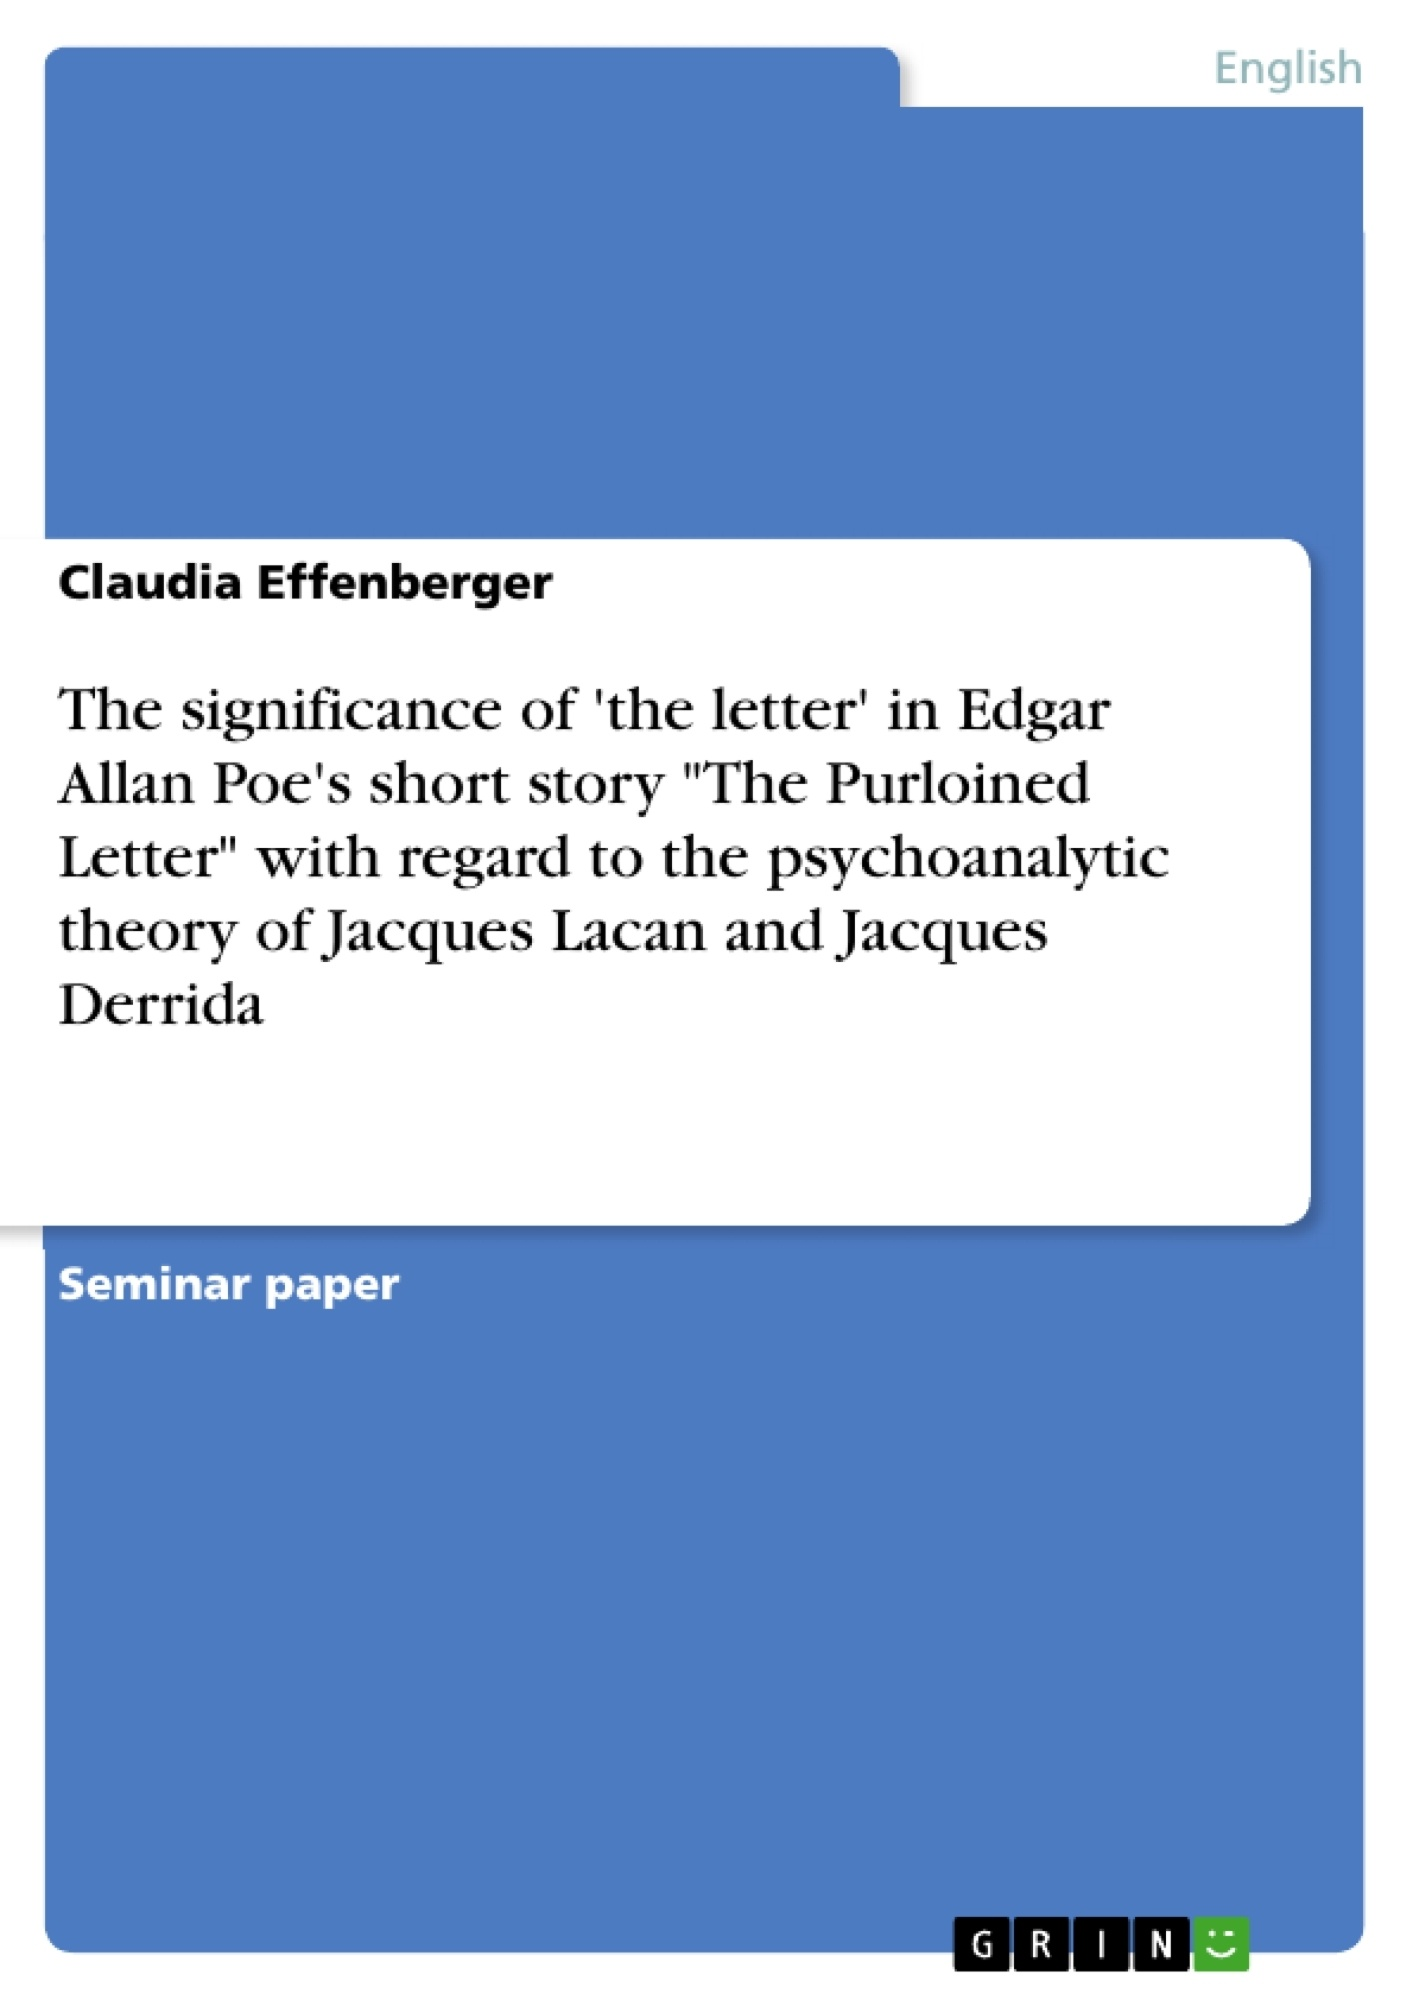 "Title: The significance of 'the letter' in Edgar Allan Poe's short story ""The Purloined Letter"" with regard to the psychoanalytic theory of Jacques Lacan and Jacques Derrida"